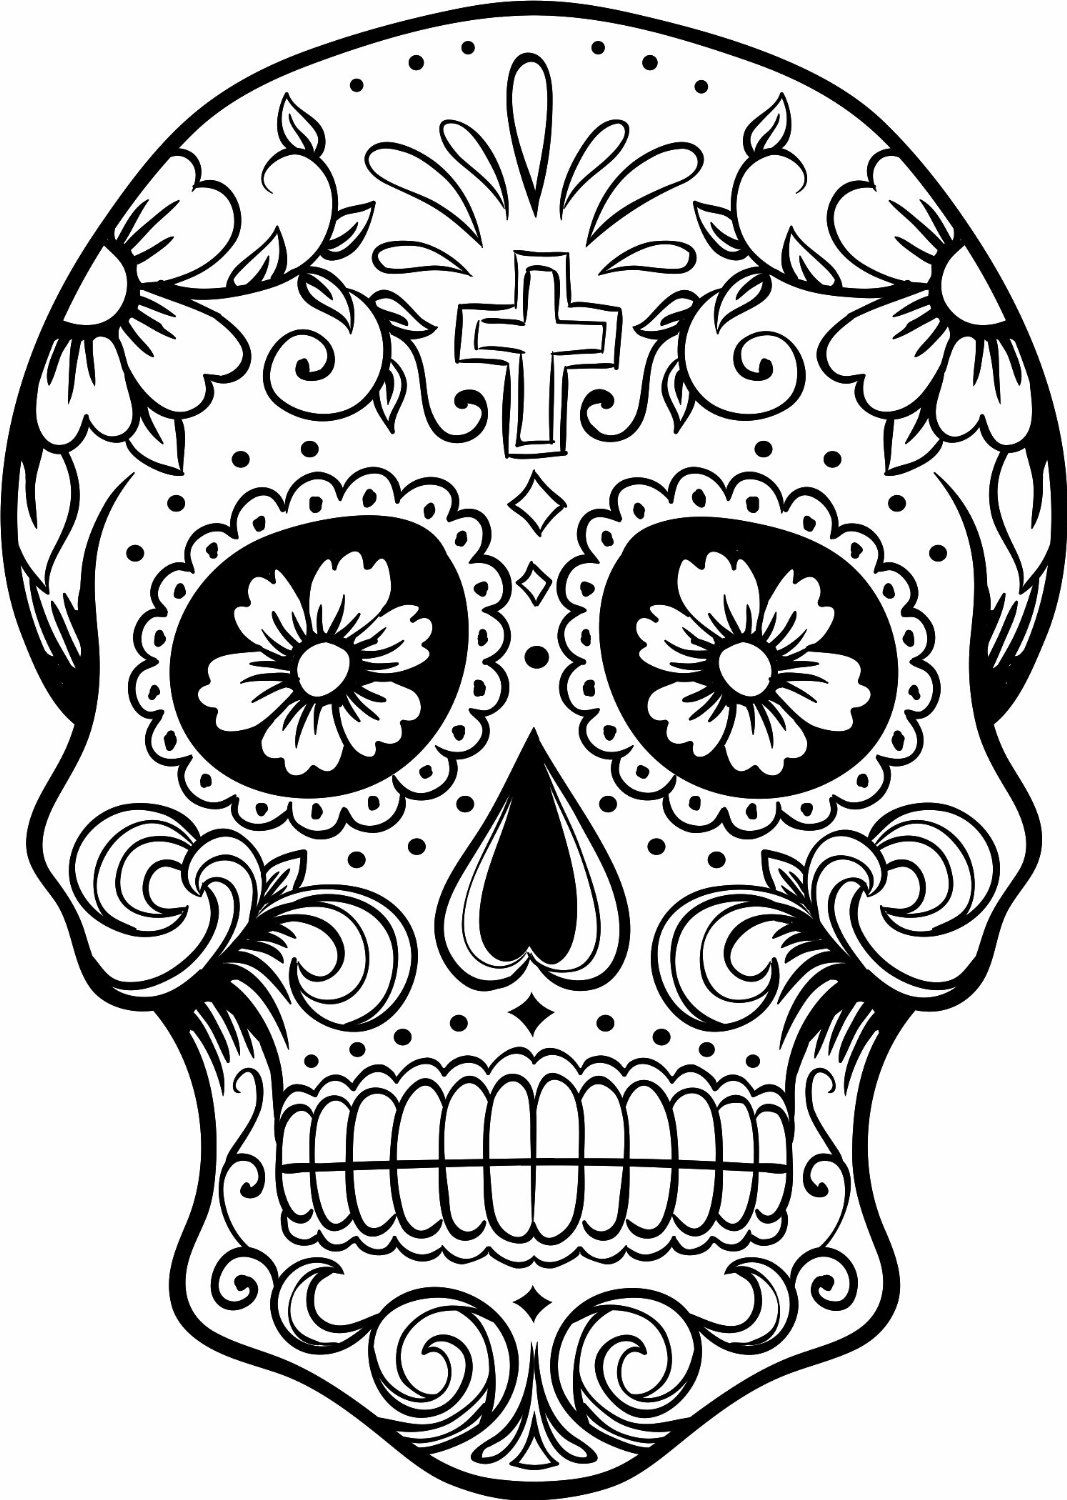 Amazon Extra Large Sugarskull Version 5 Wall Vinyl Decal Sticker Art Graphic